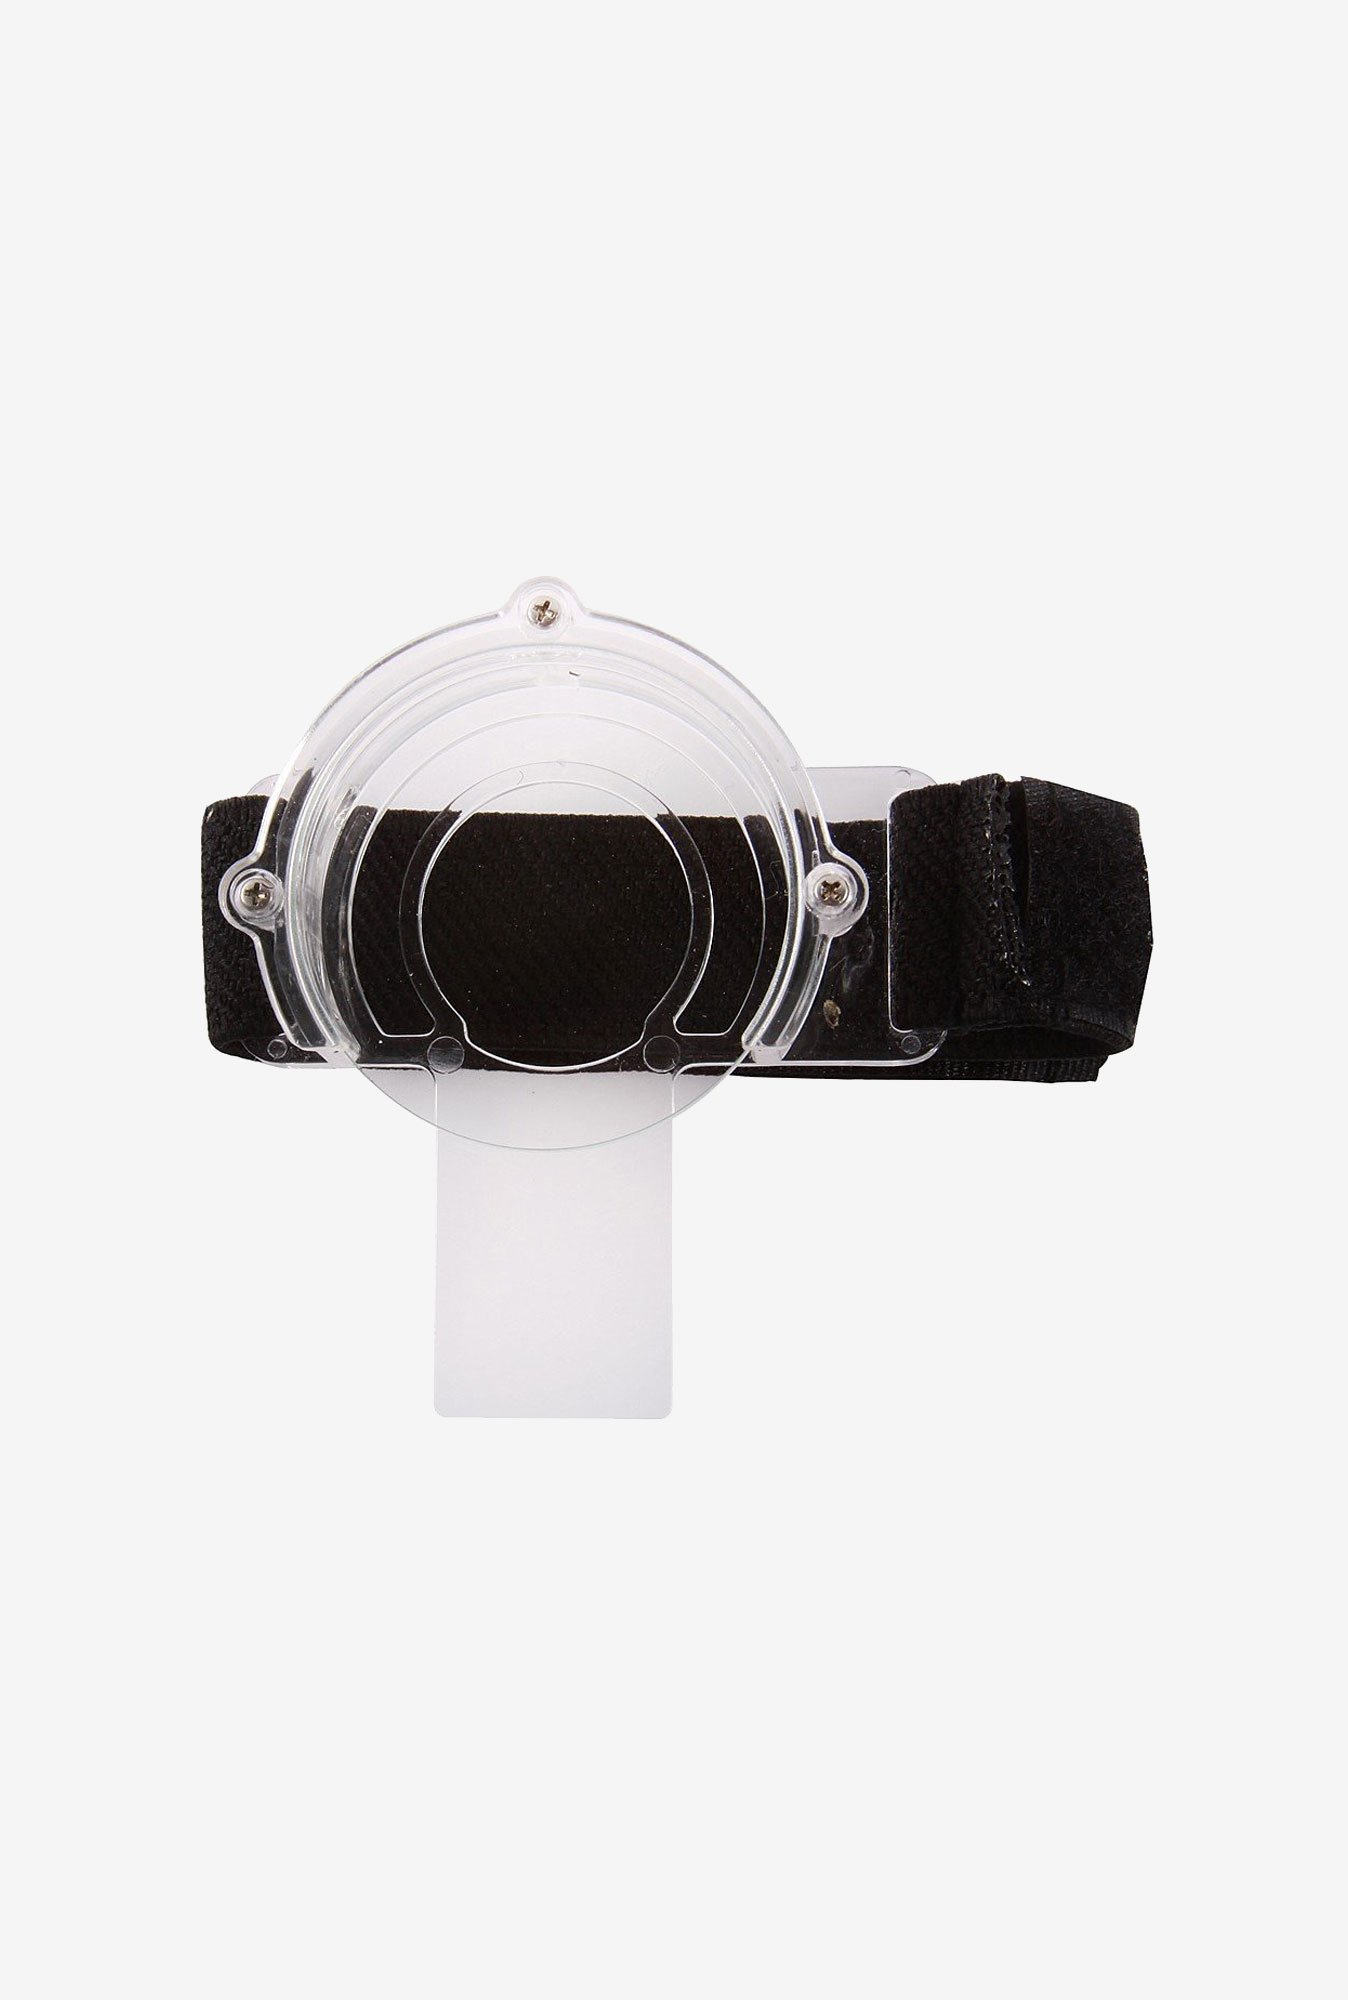 Neewer Wrist Strap Protective Cover Cap For Gopro Hero